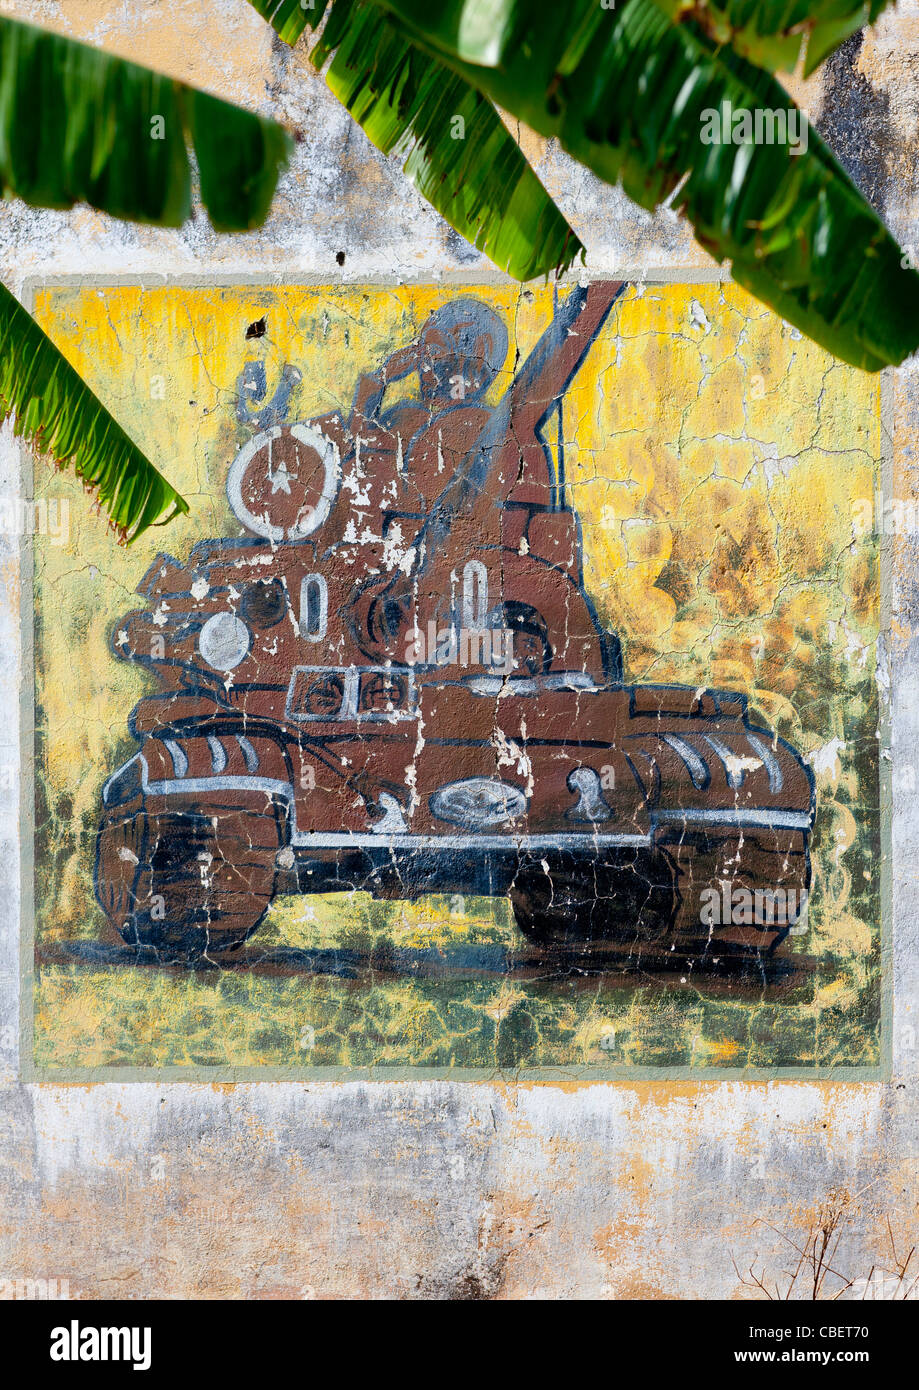 Painting Of A Tank On A Wall In Lubango, Angola - Stock Image